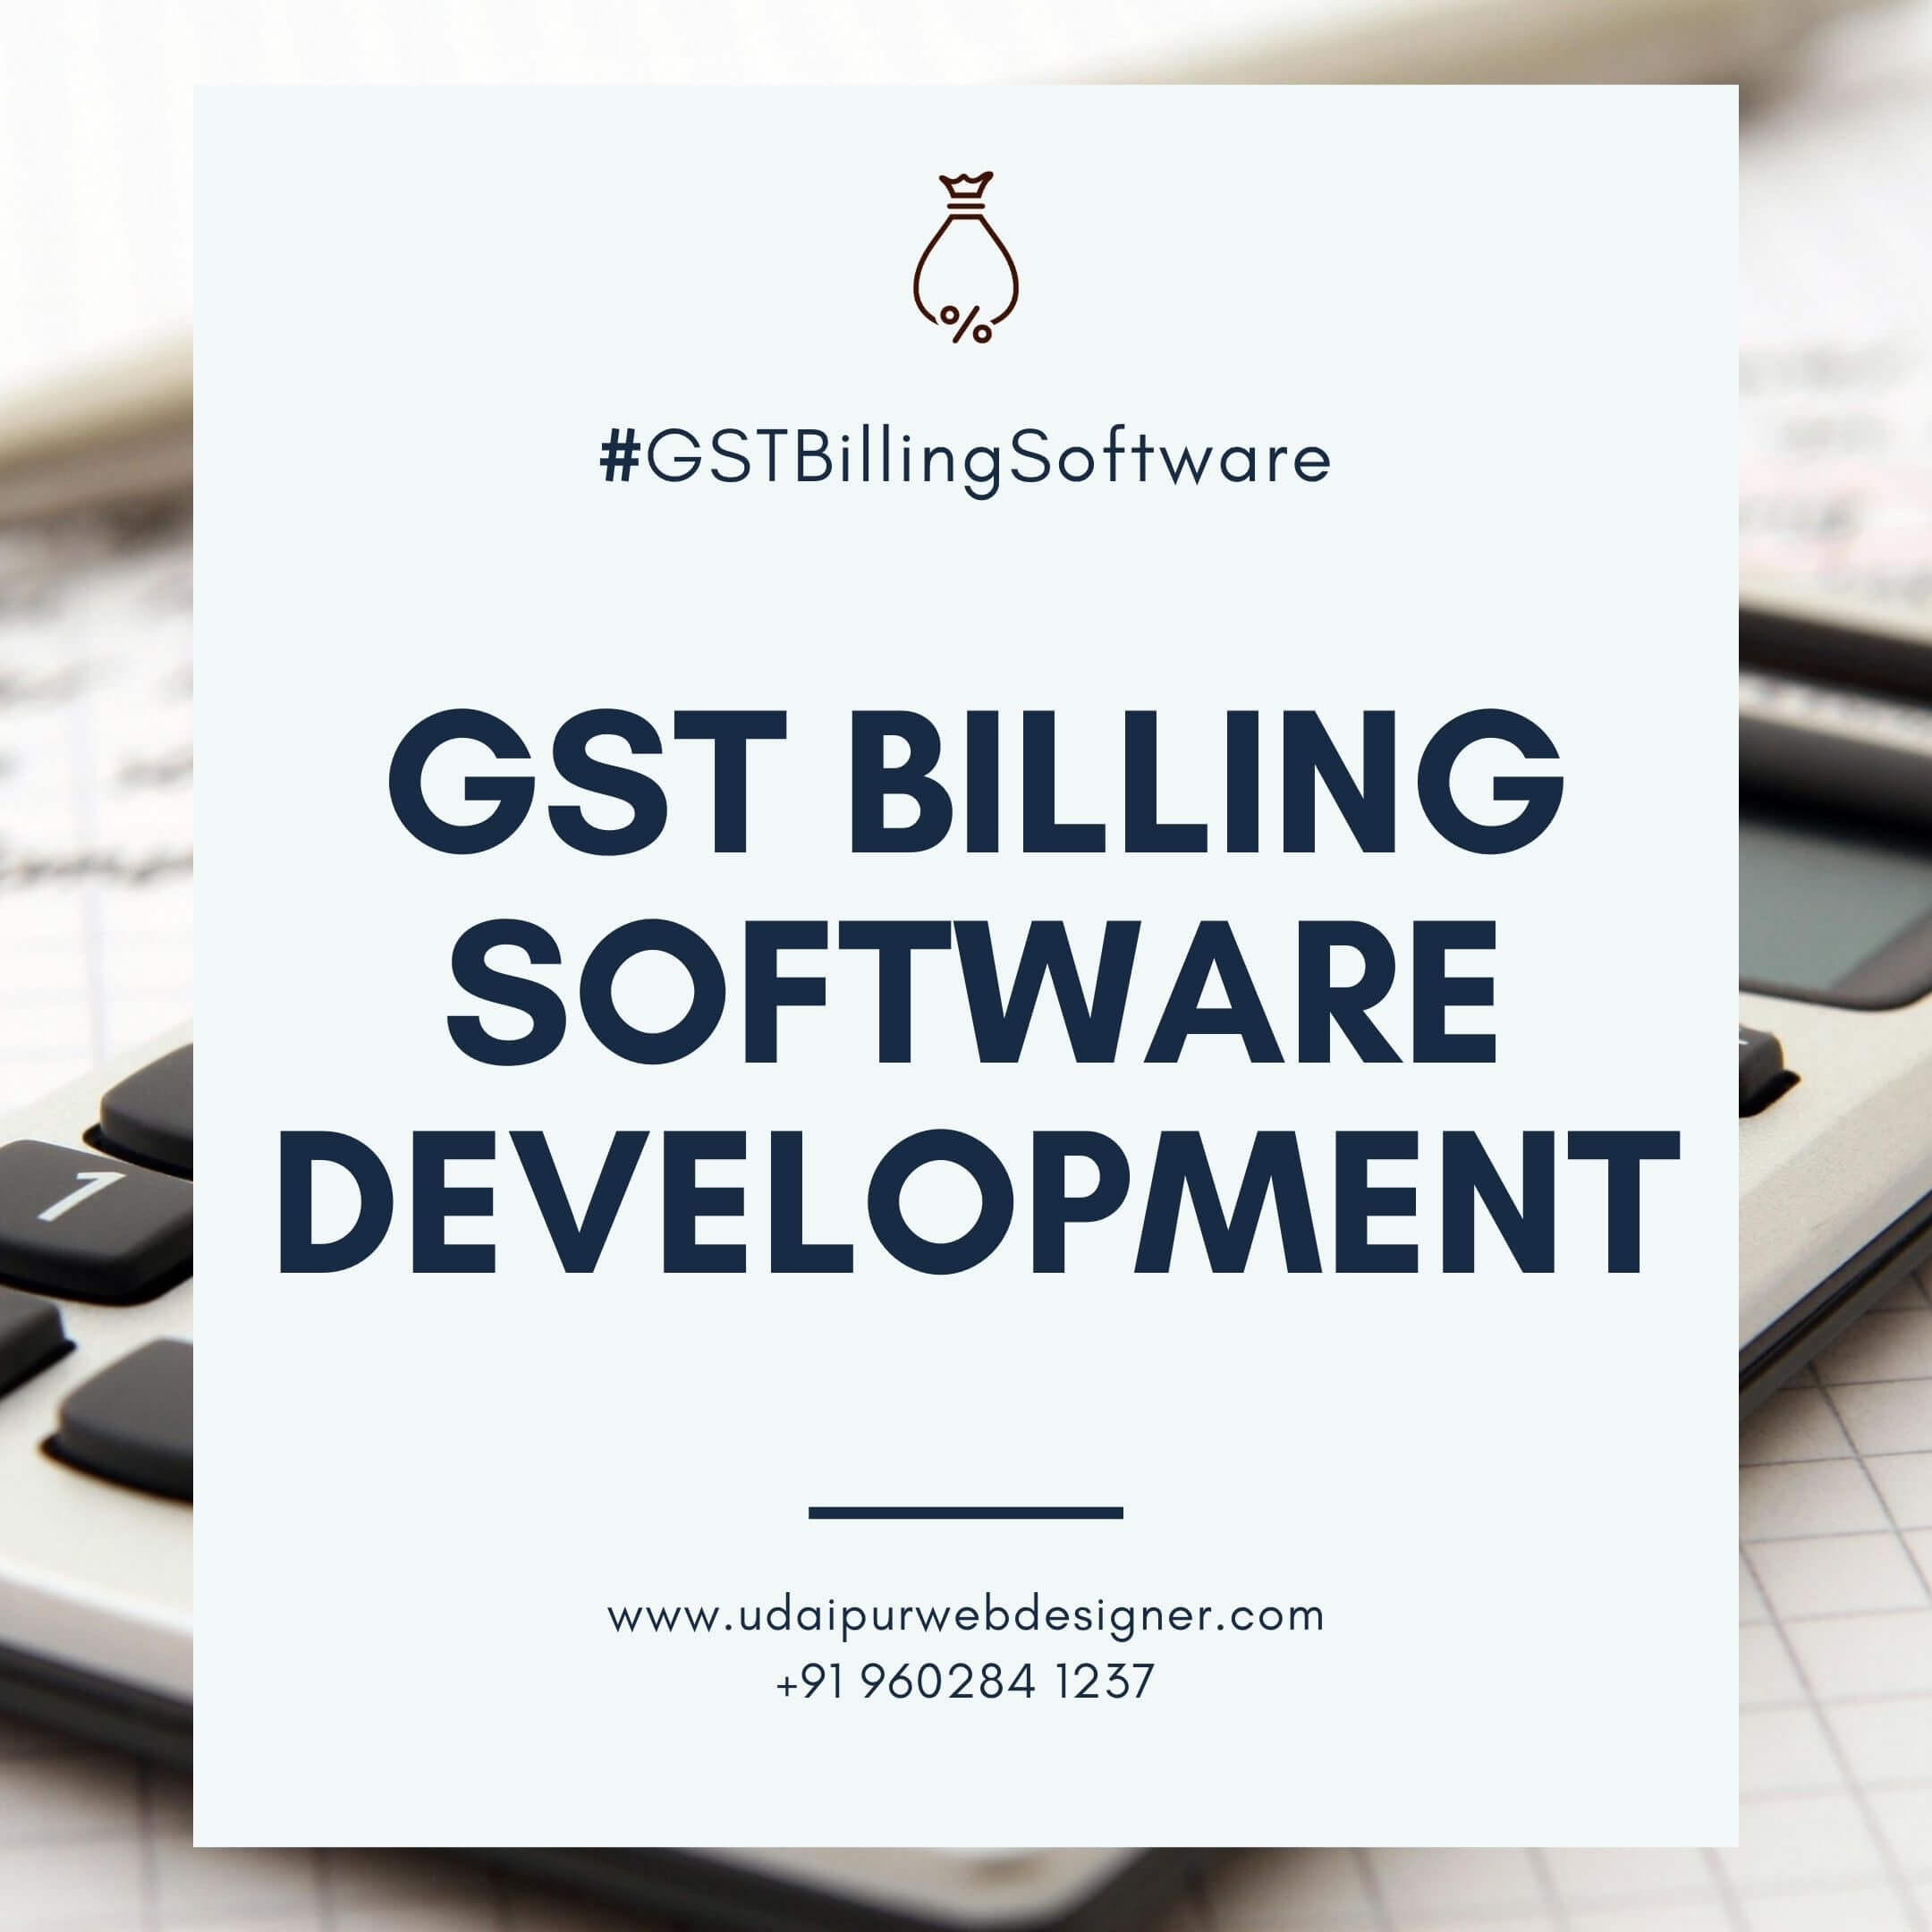 GST Billing Software Development Udaipur